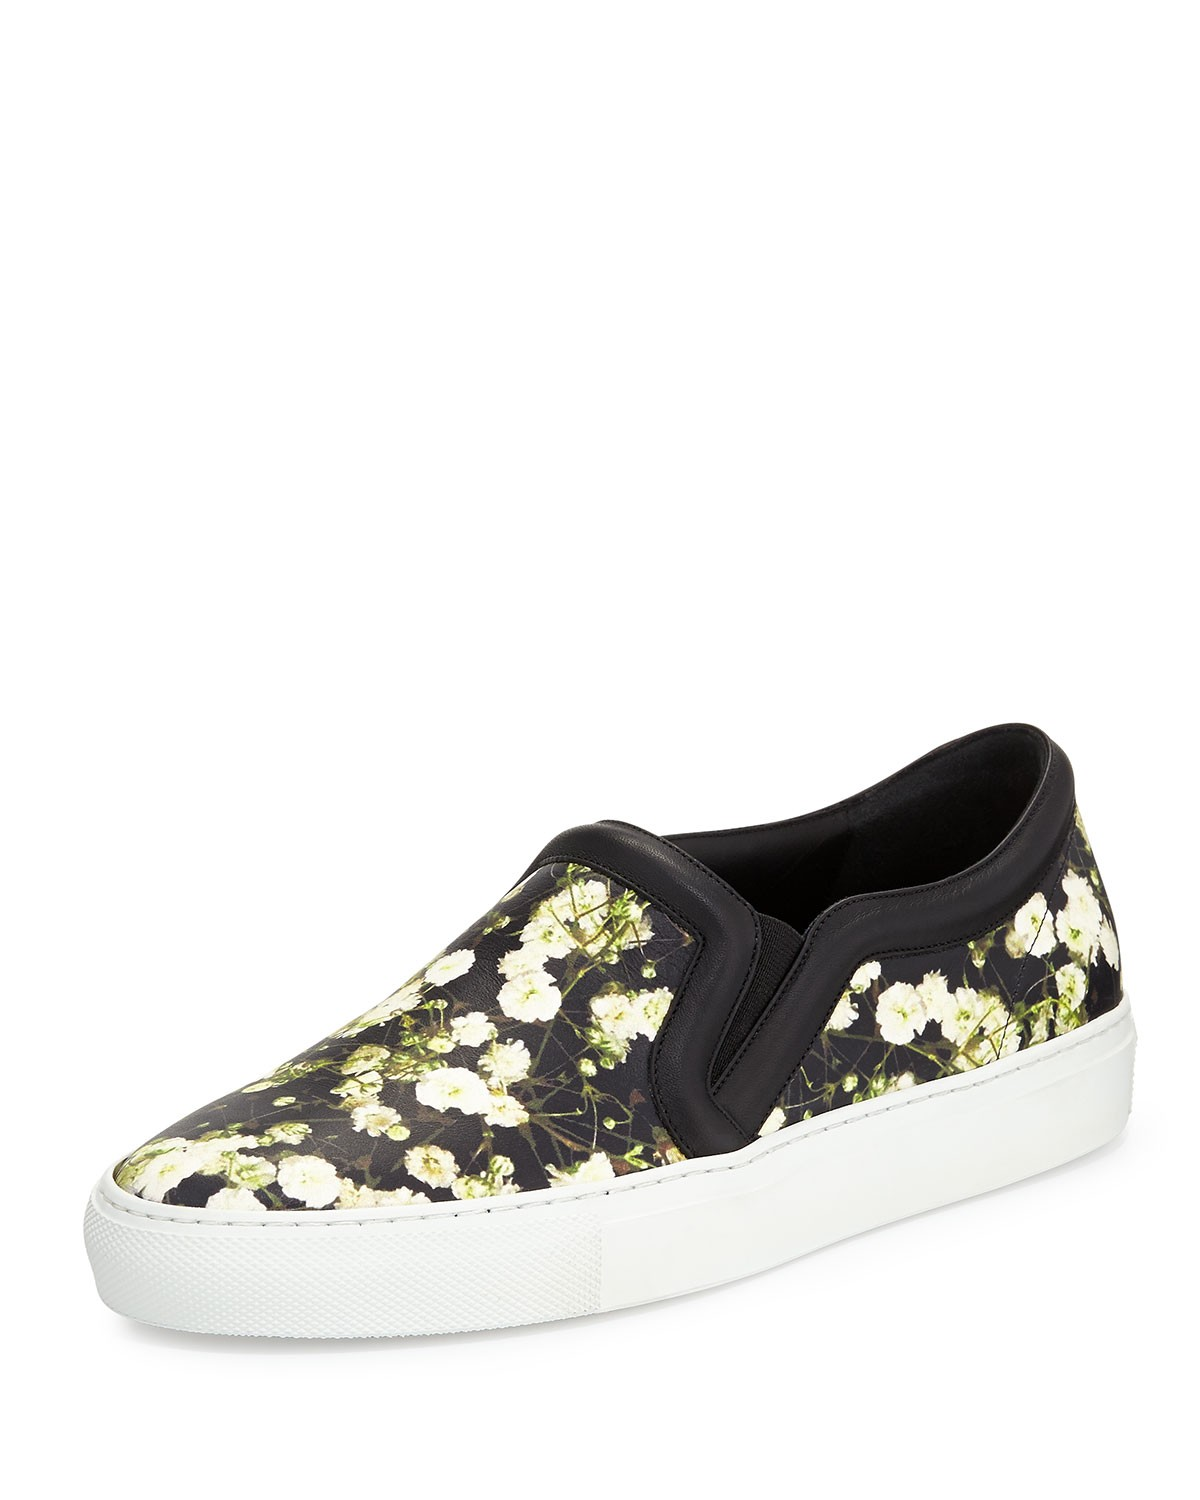 Floral-Print Skate Sneaker, Baby's Breath - Givenchy